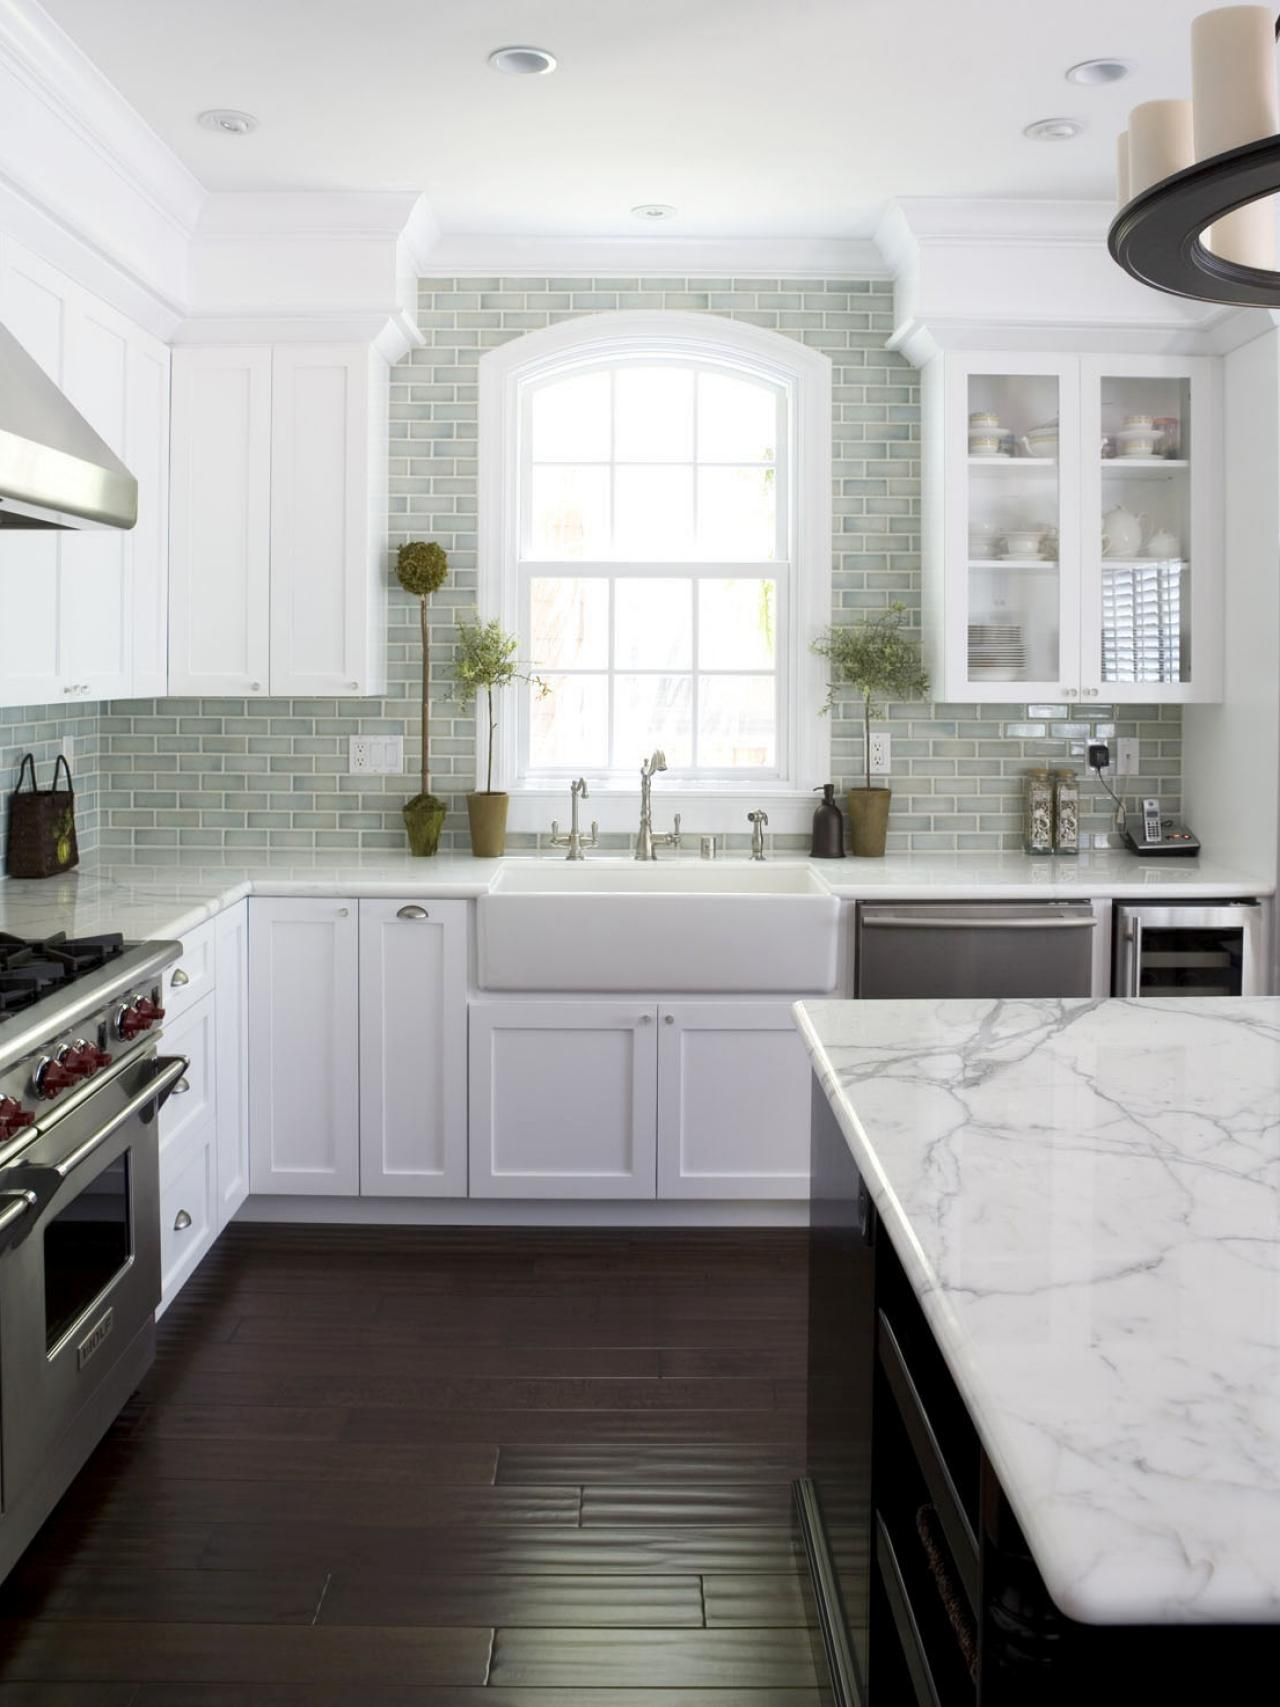 White Kitchen with Dark Tile Floor